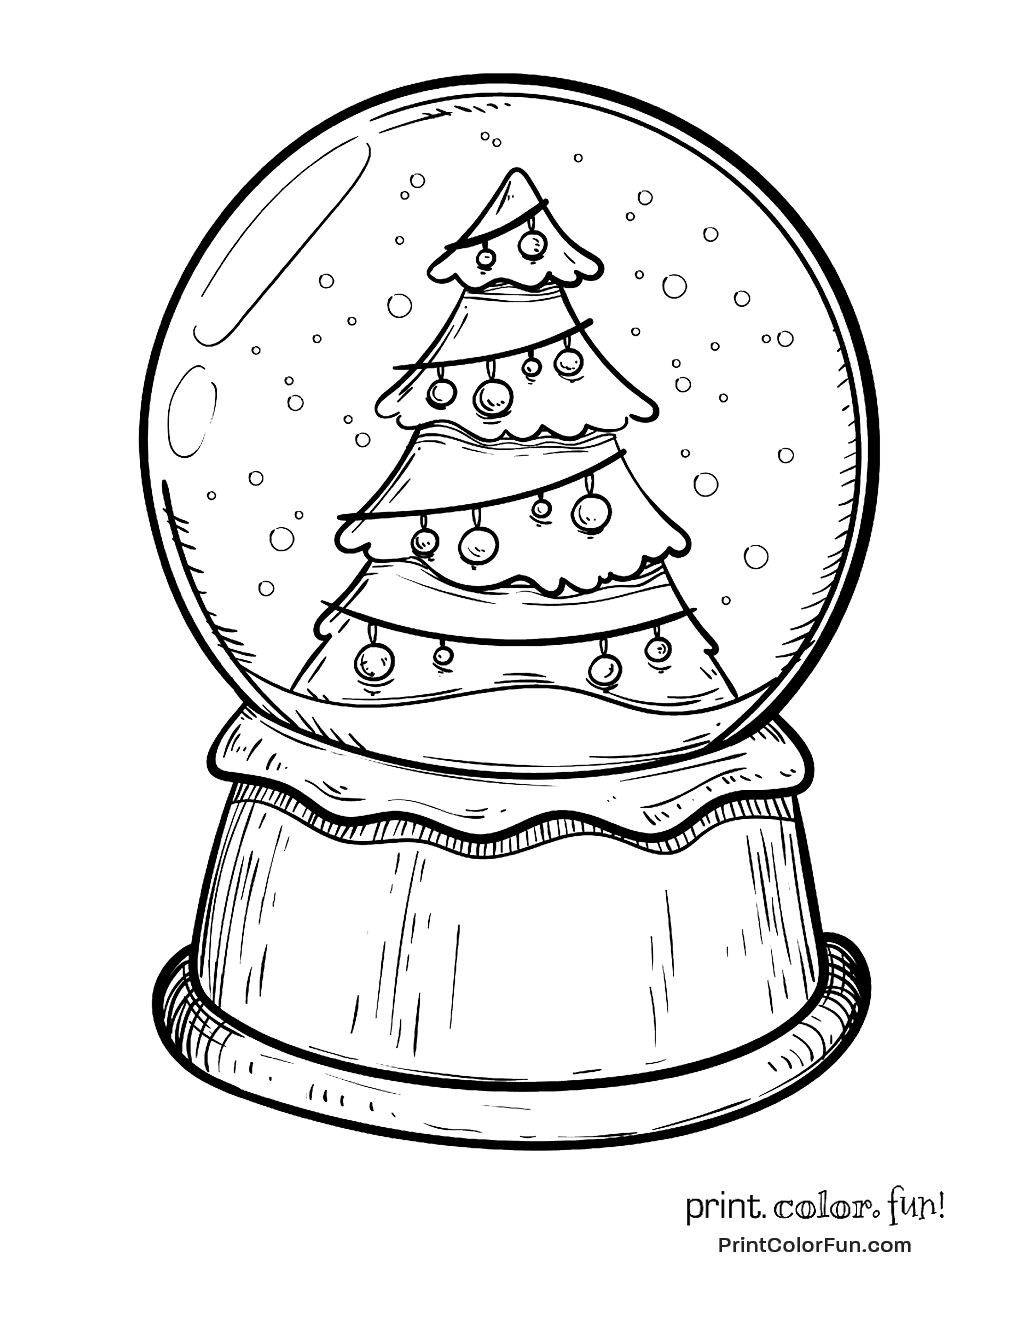 snow globe coloring page snow globe with a christmas tree coloring page print snow page coloring globe